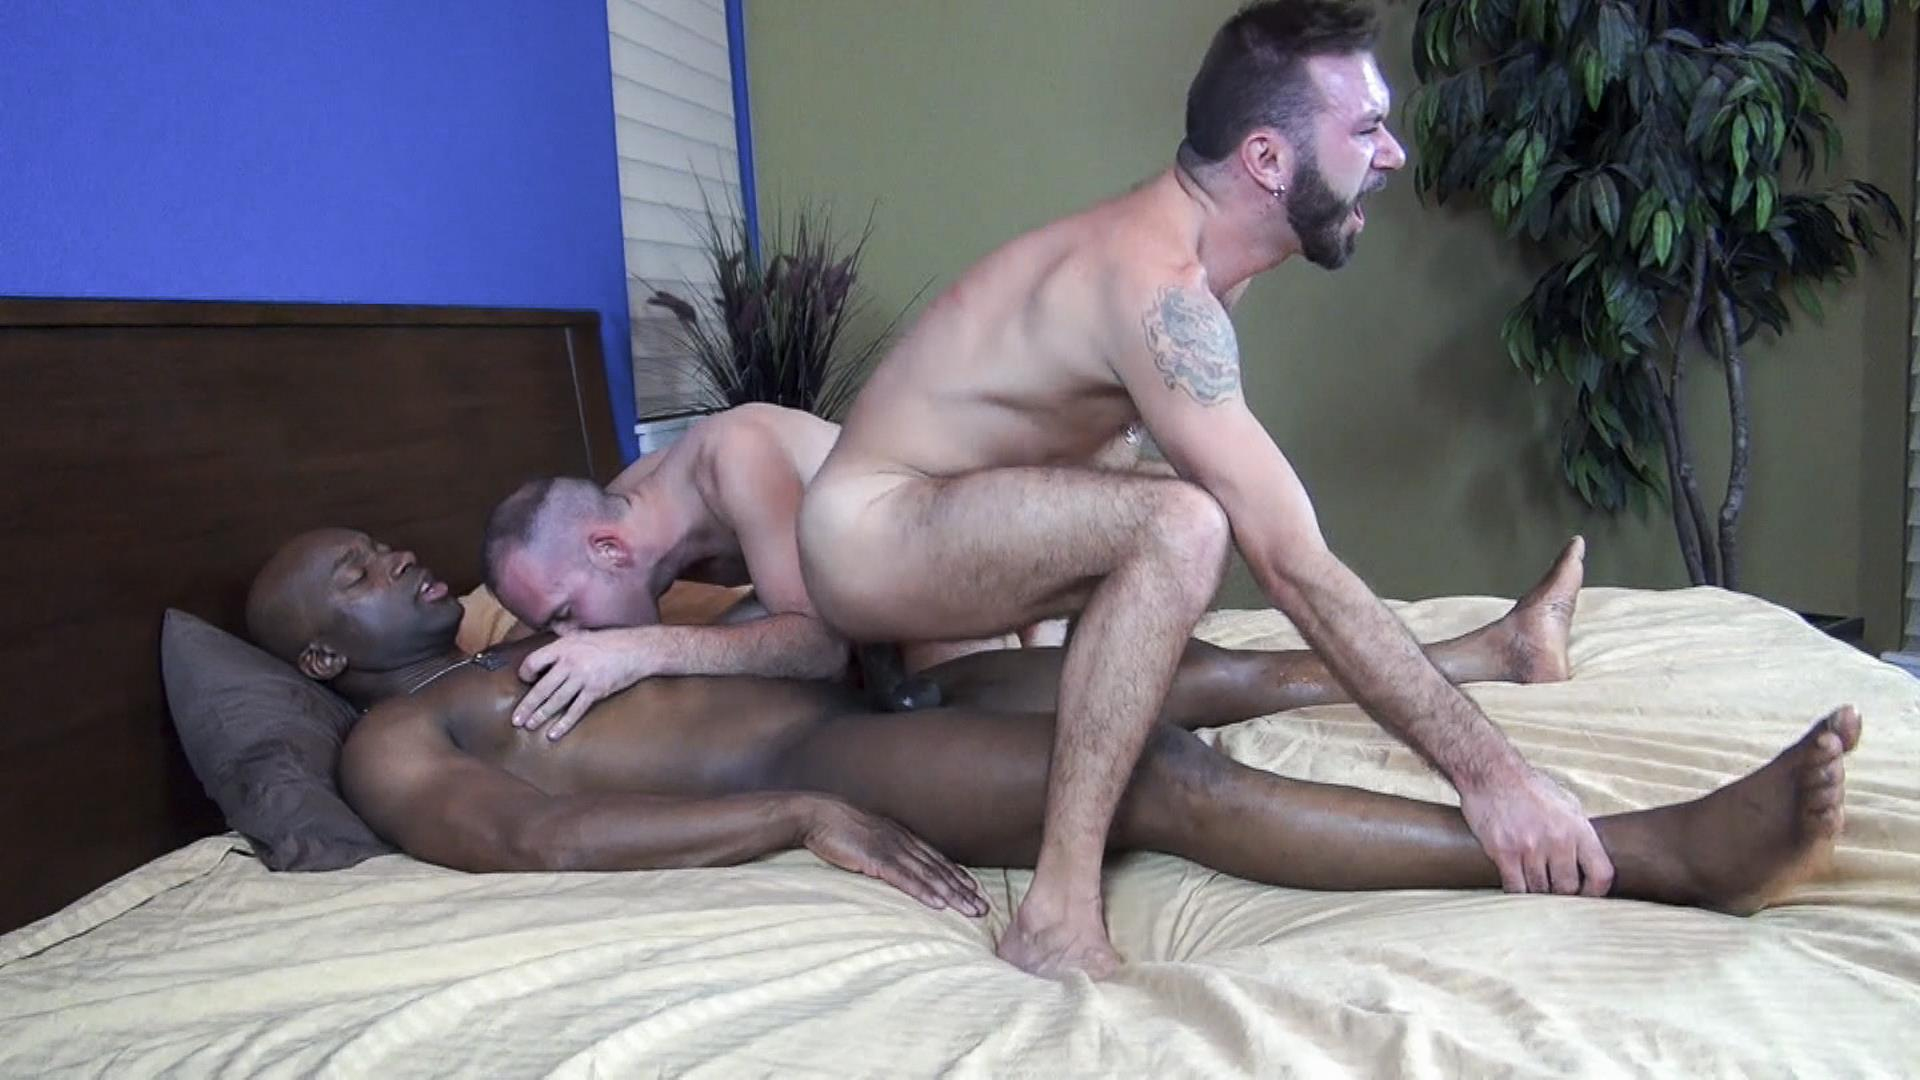 Raw-Fuck-Club-Ethan-Palmer-and-Champ-Robinson-and-Trit-Tyler-Bareback-Interrical-Amateur-Gay-Porn-08 Champ Robinson Shares His Big Black Dick With 2 White Guys